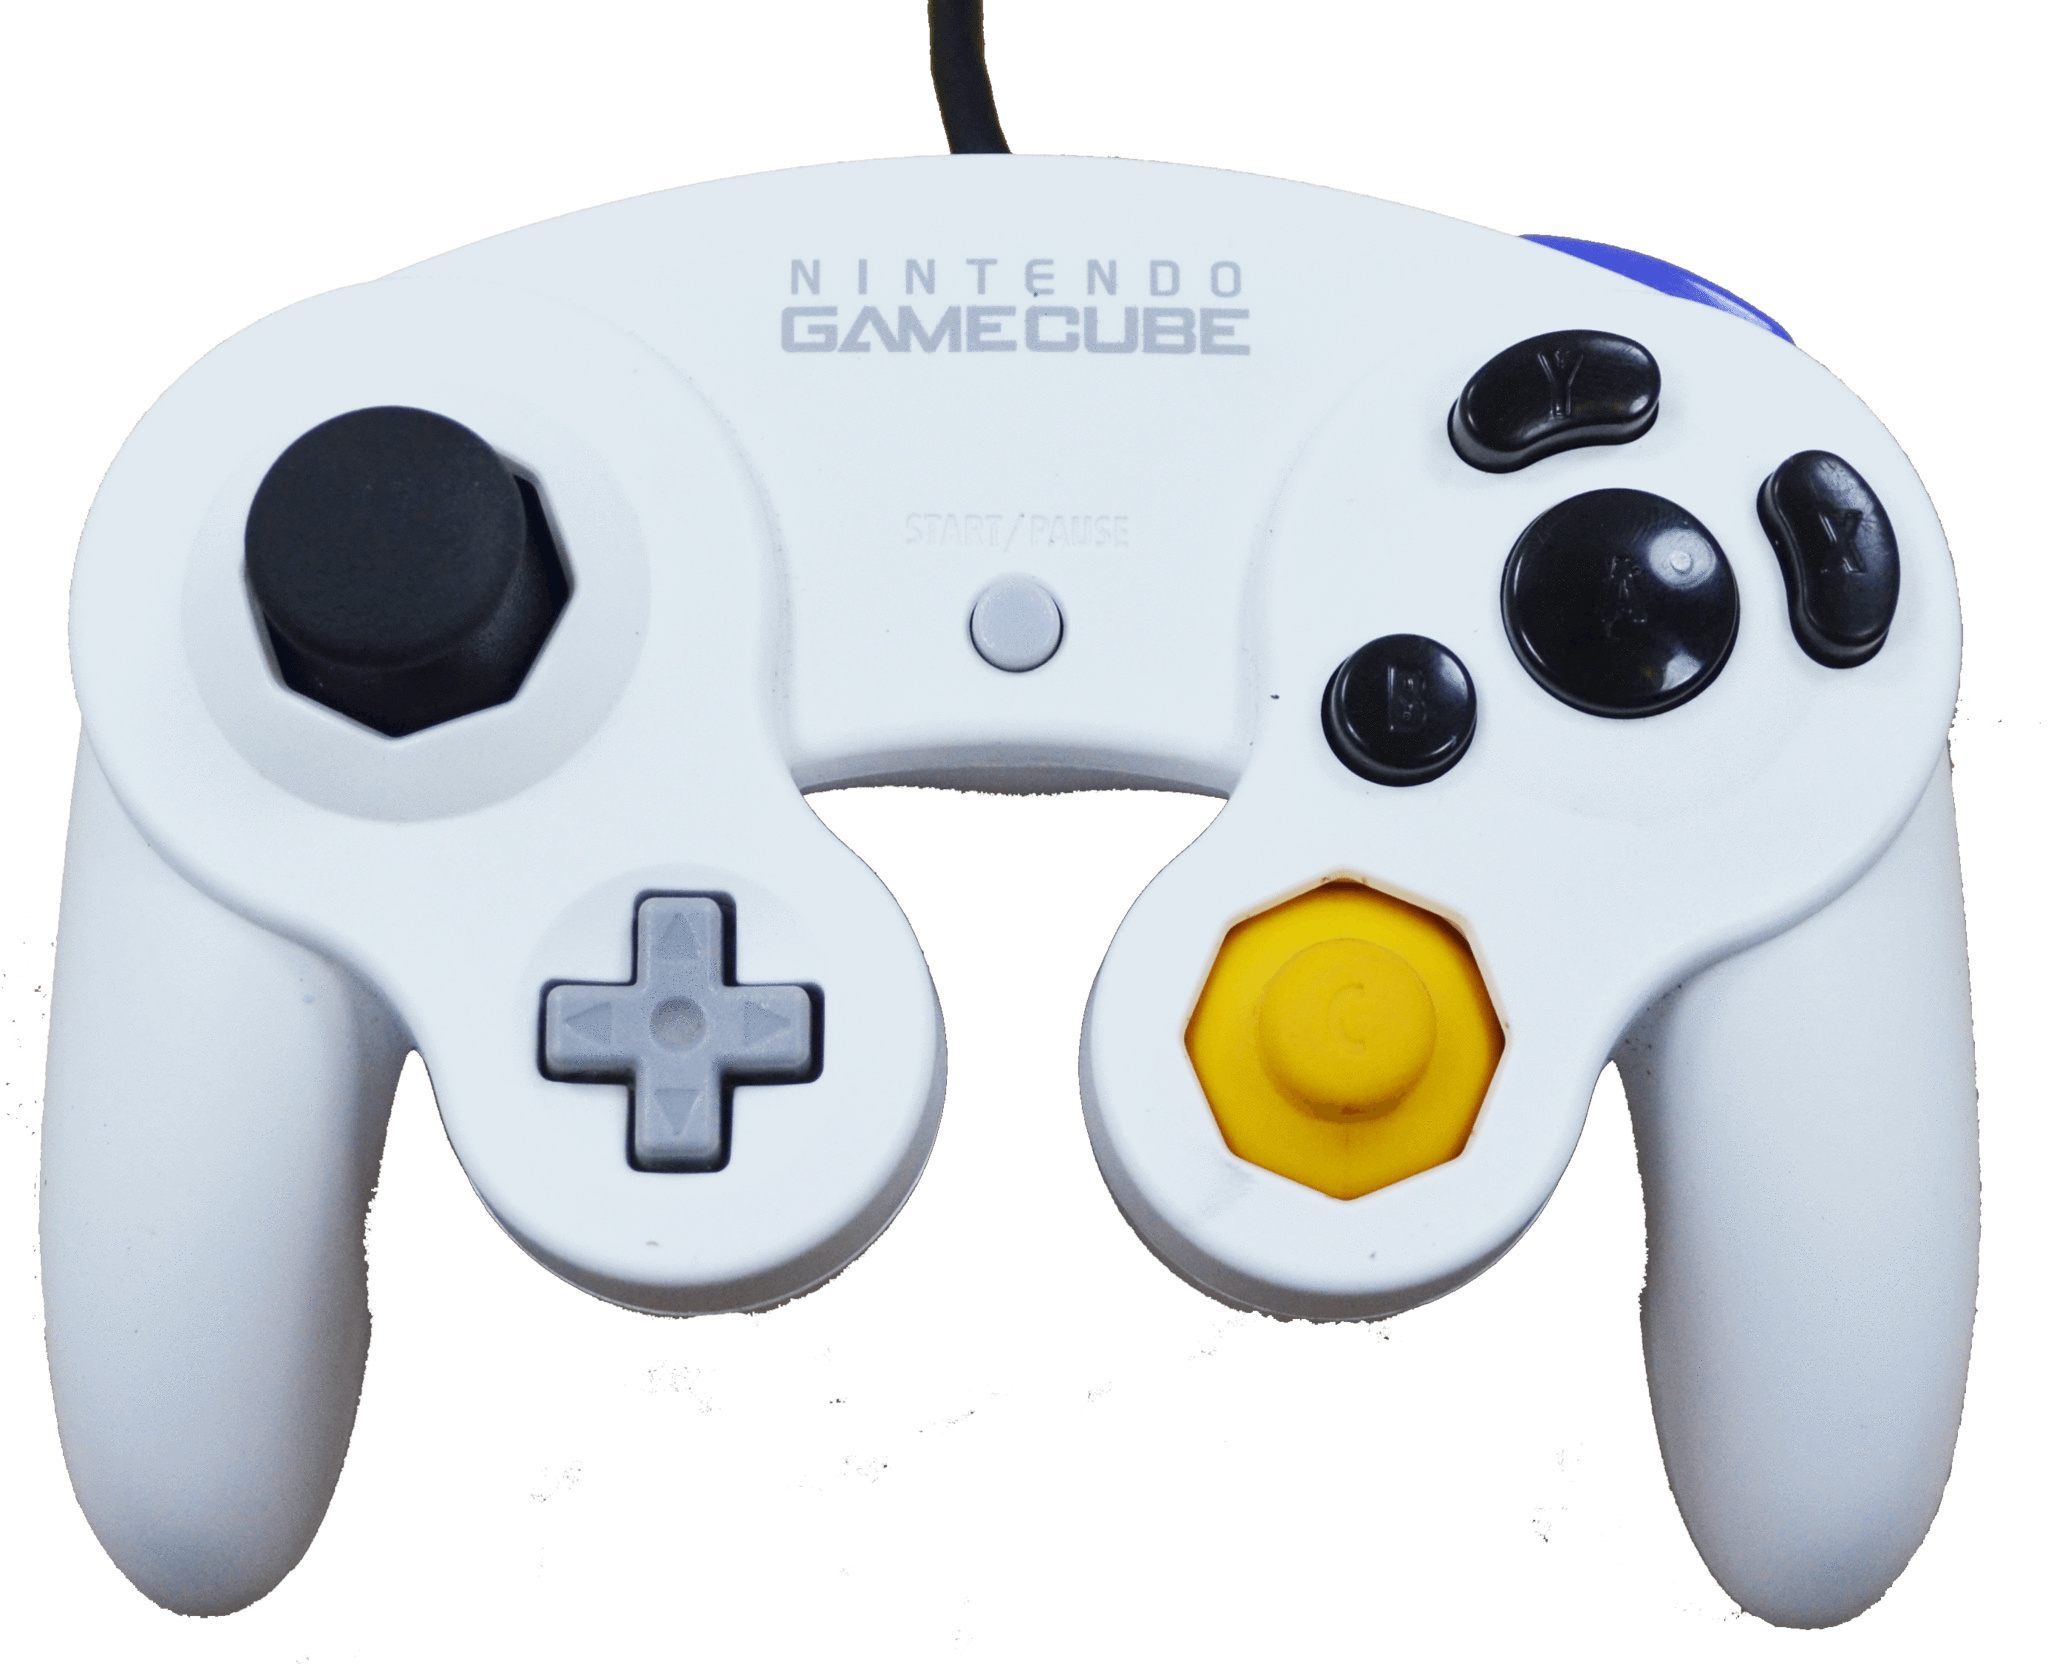 Gamecube buttons png. Battle beaver customs domed